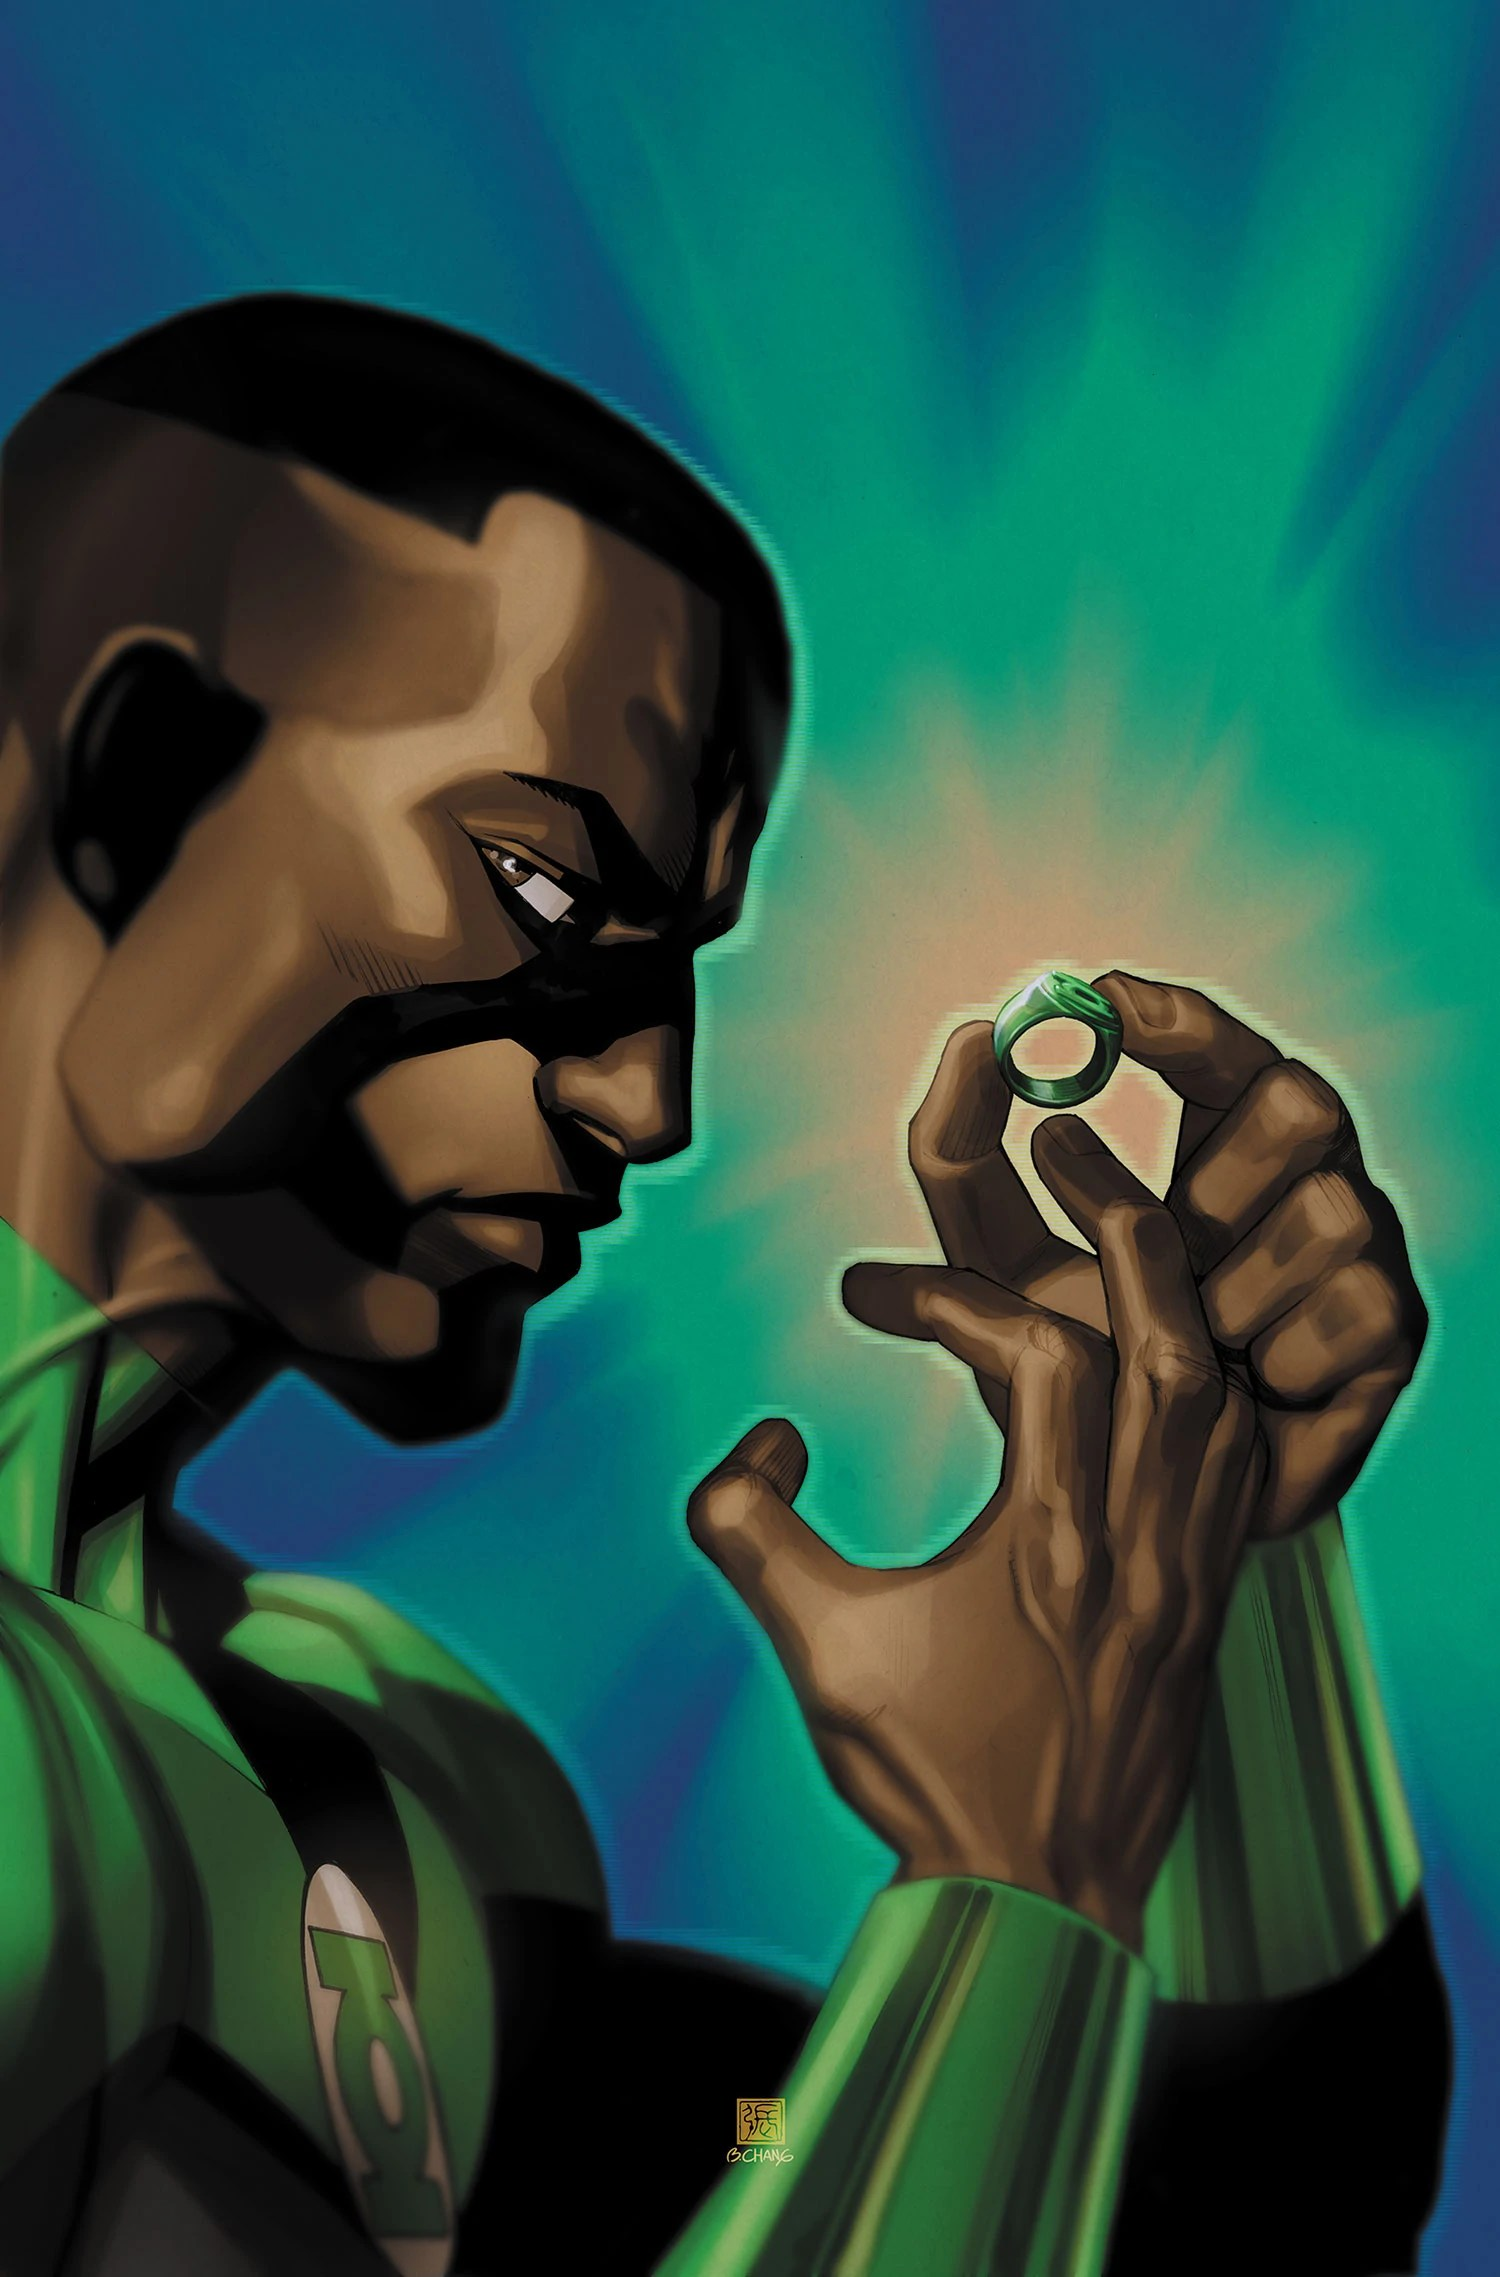 It's time John Stewart solidified his place in the Green Lantern Universe. I think being Corps Leader, either literally or figuratively, would be a great evolution for his character.